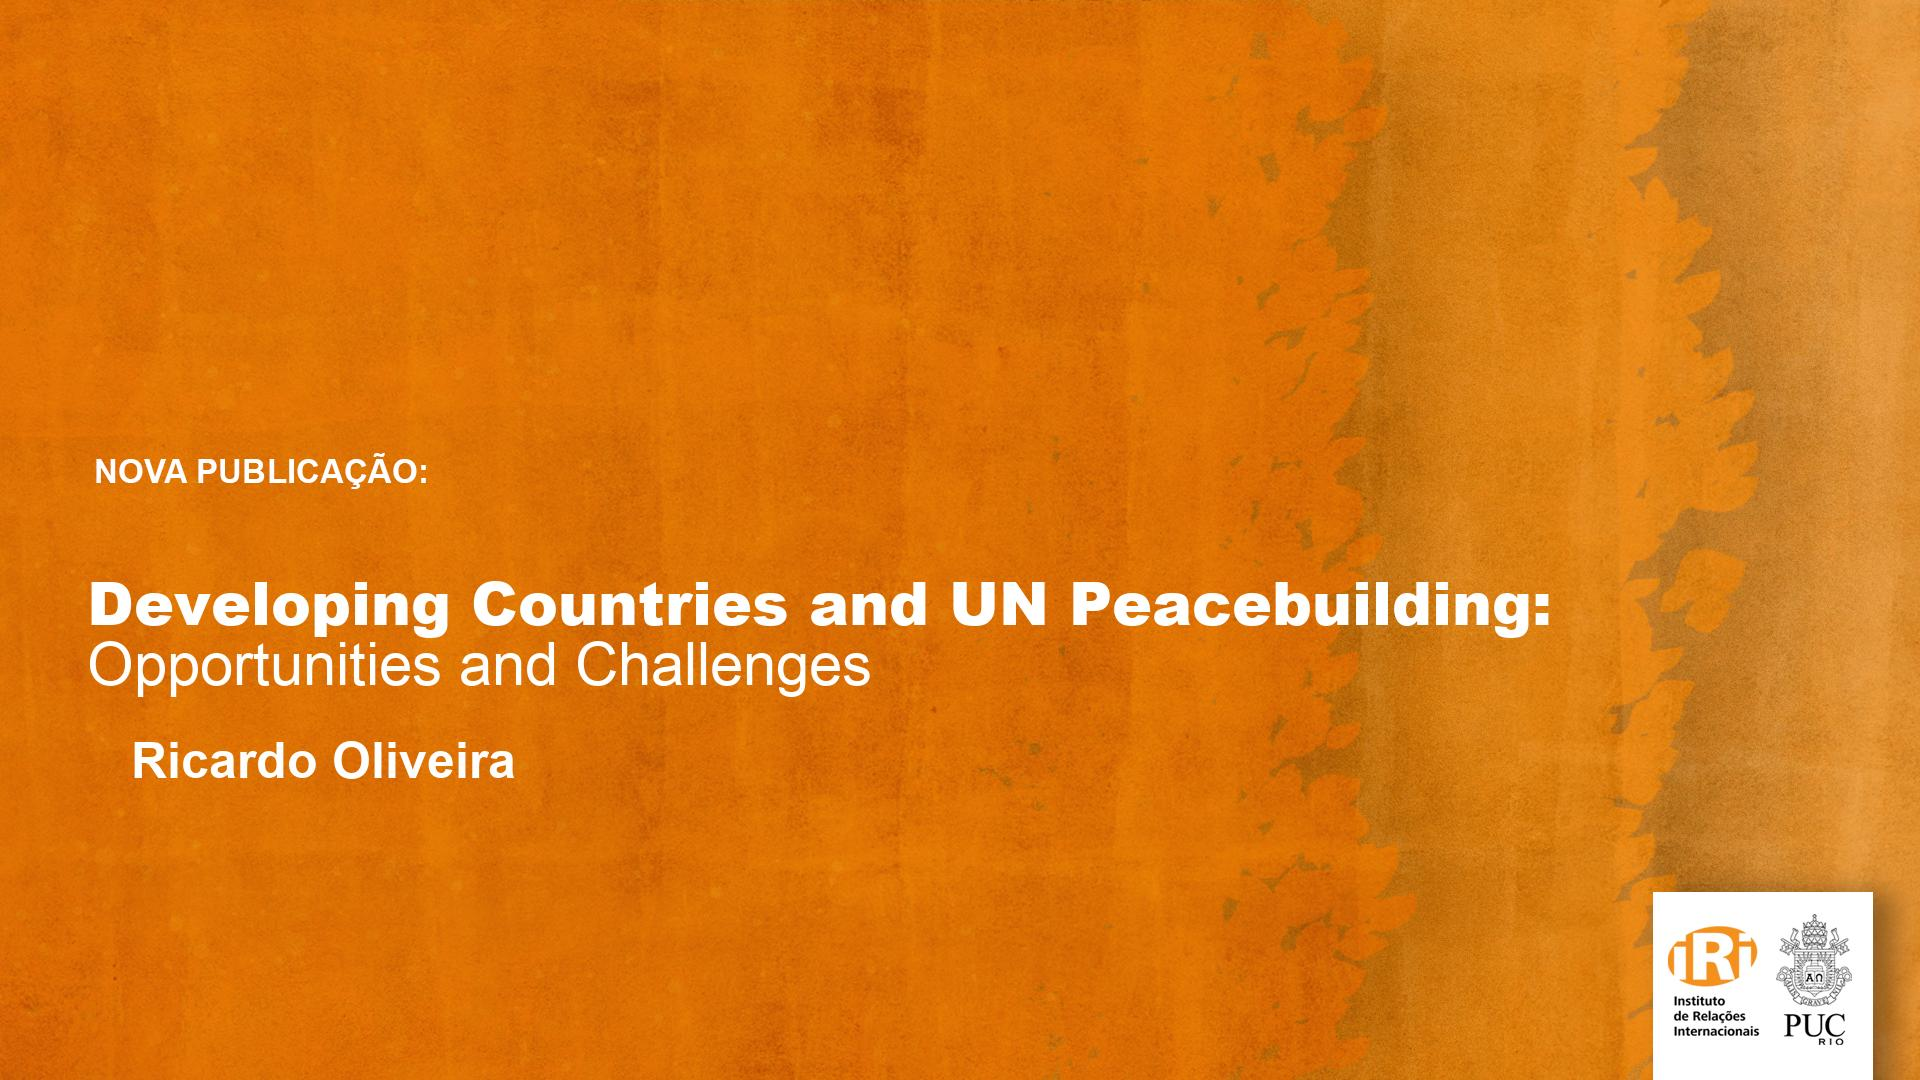 Developing Countries and UN Peacebuilding: Opportunities and Challenges